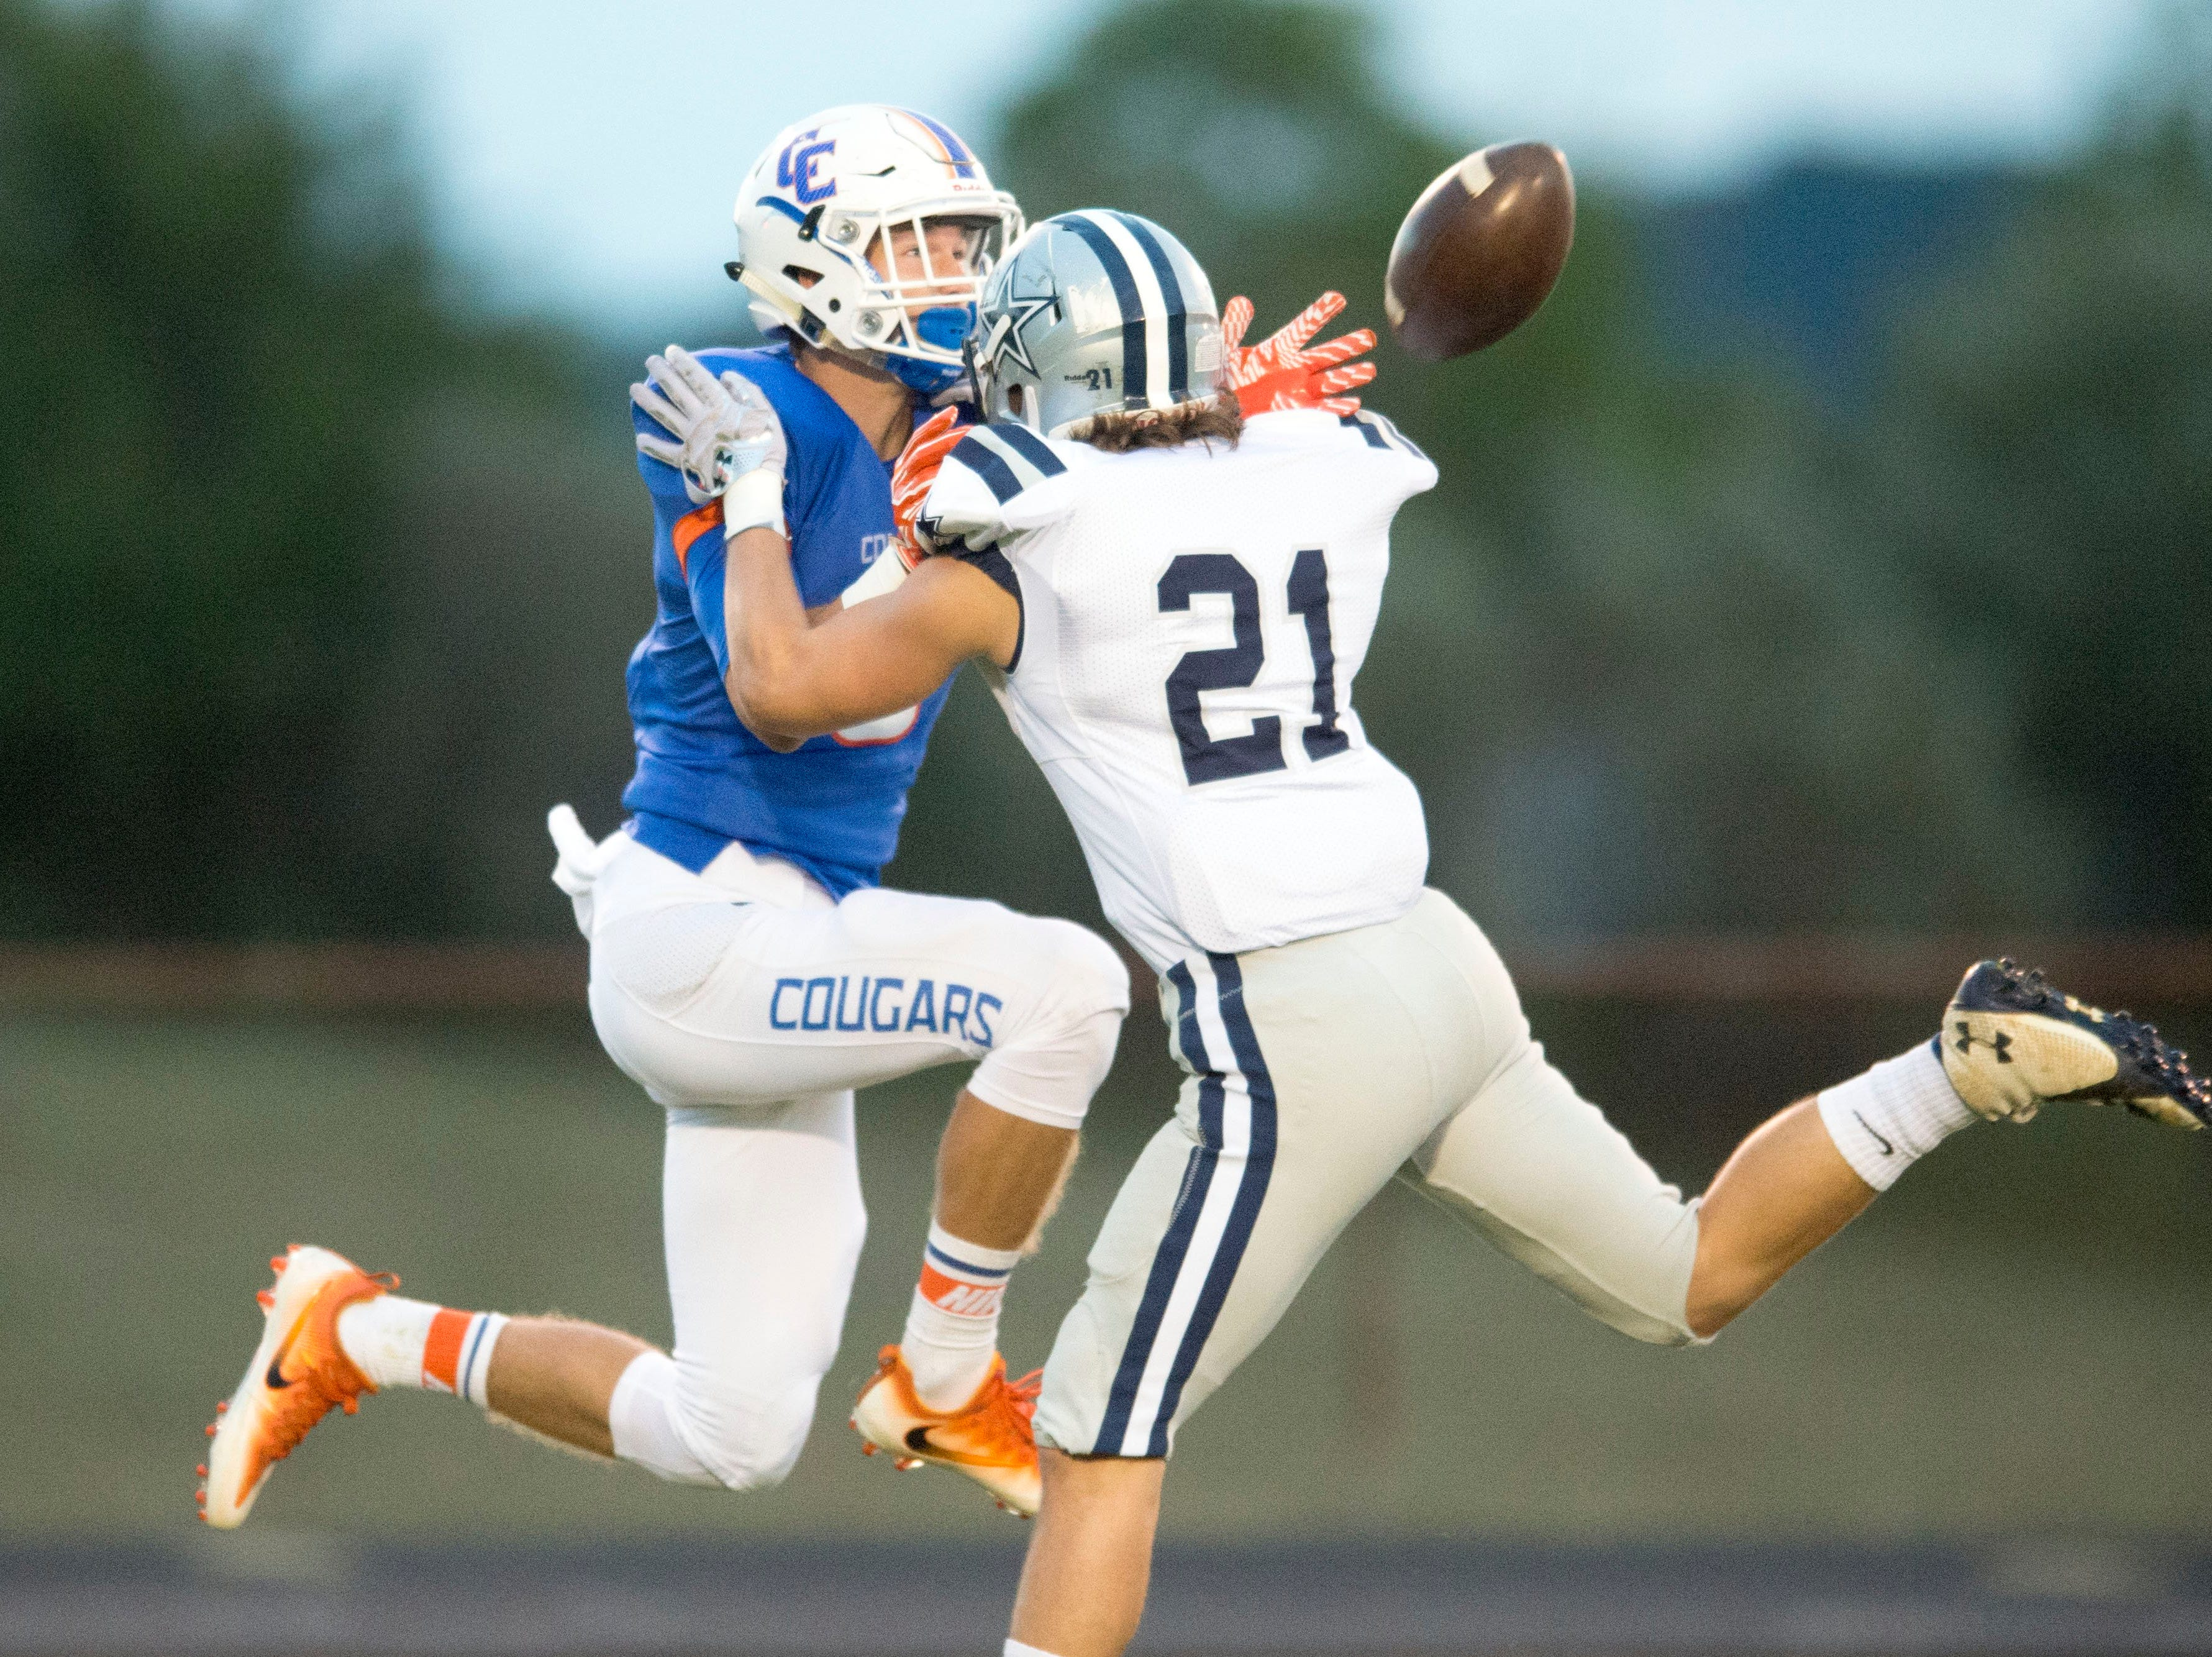 Campbell County's Logan Phillips misses a catch while defended by Farragut's Grayson Utterback at Campbell County High School on Thursday, September 29, 2016. Utterback was called for pass interference.